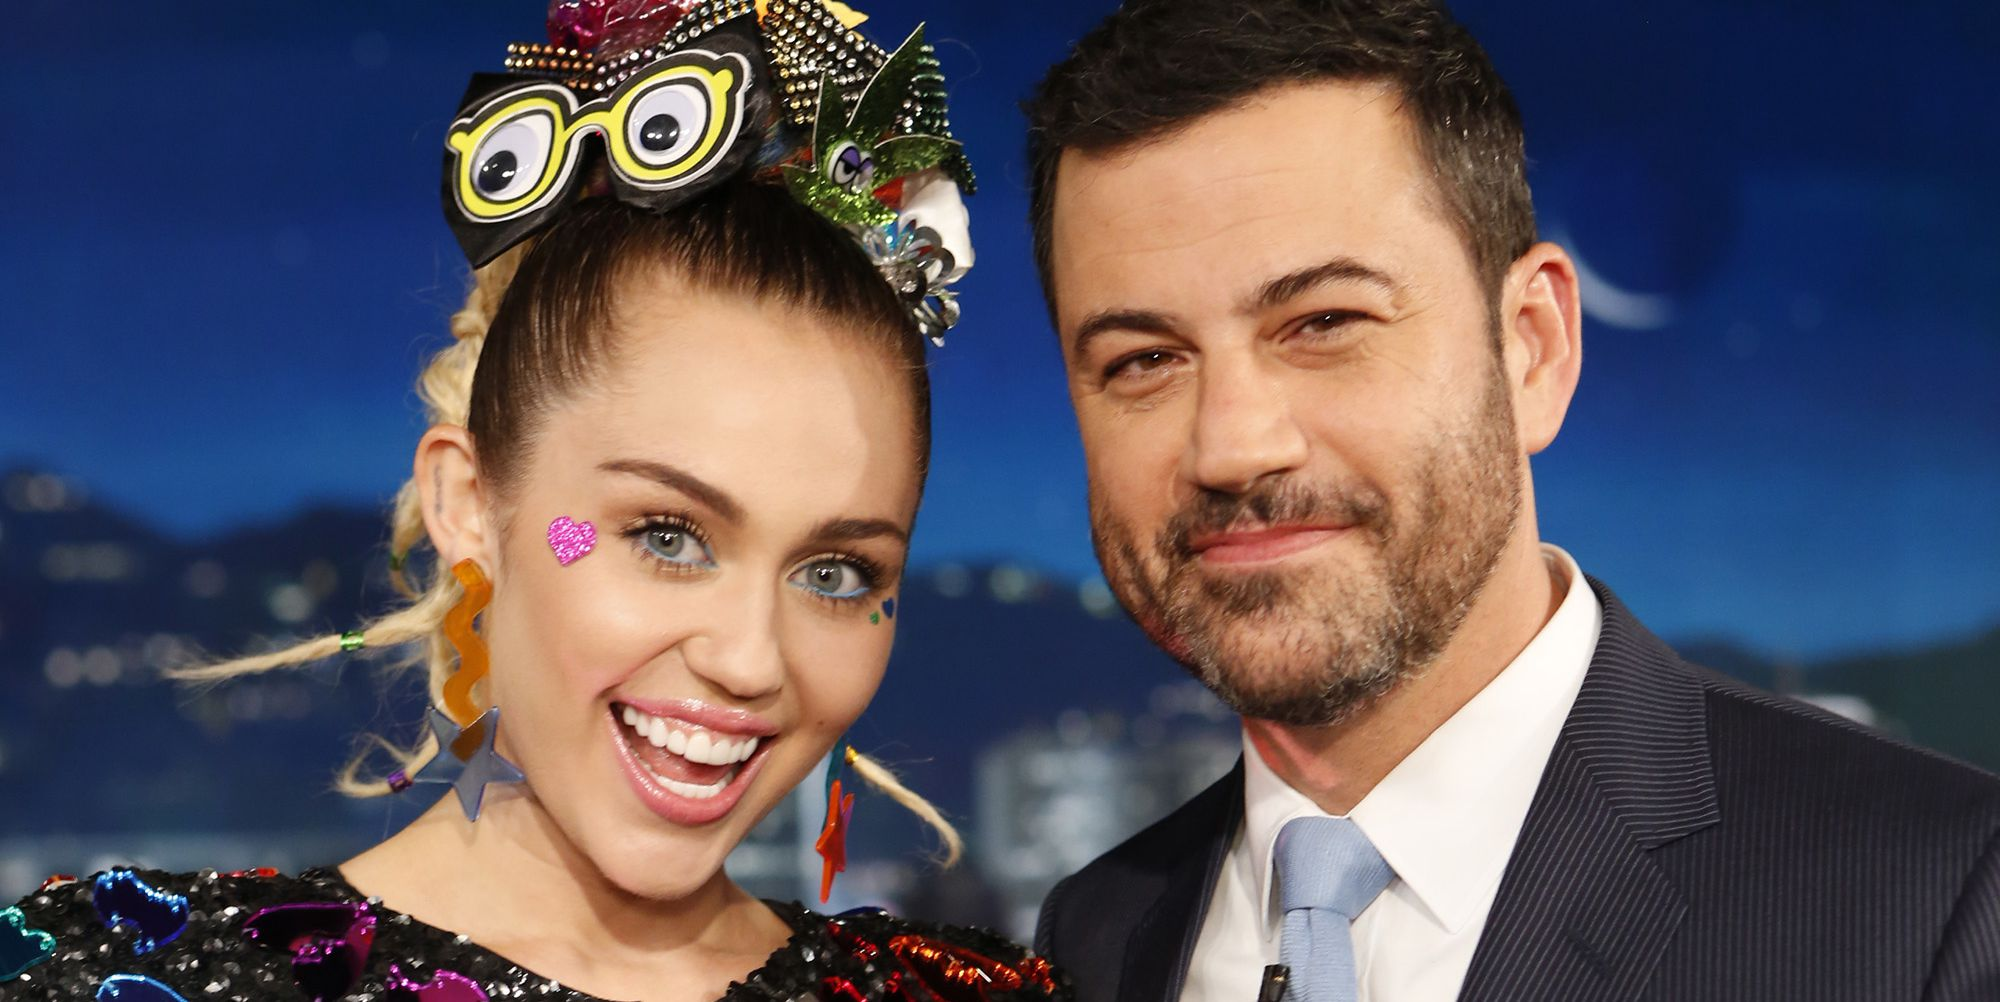 Miley Cyrus Pranked a Sleeping Jimmy Kimmel and Accidentally Hit Him in the Balls in the Process